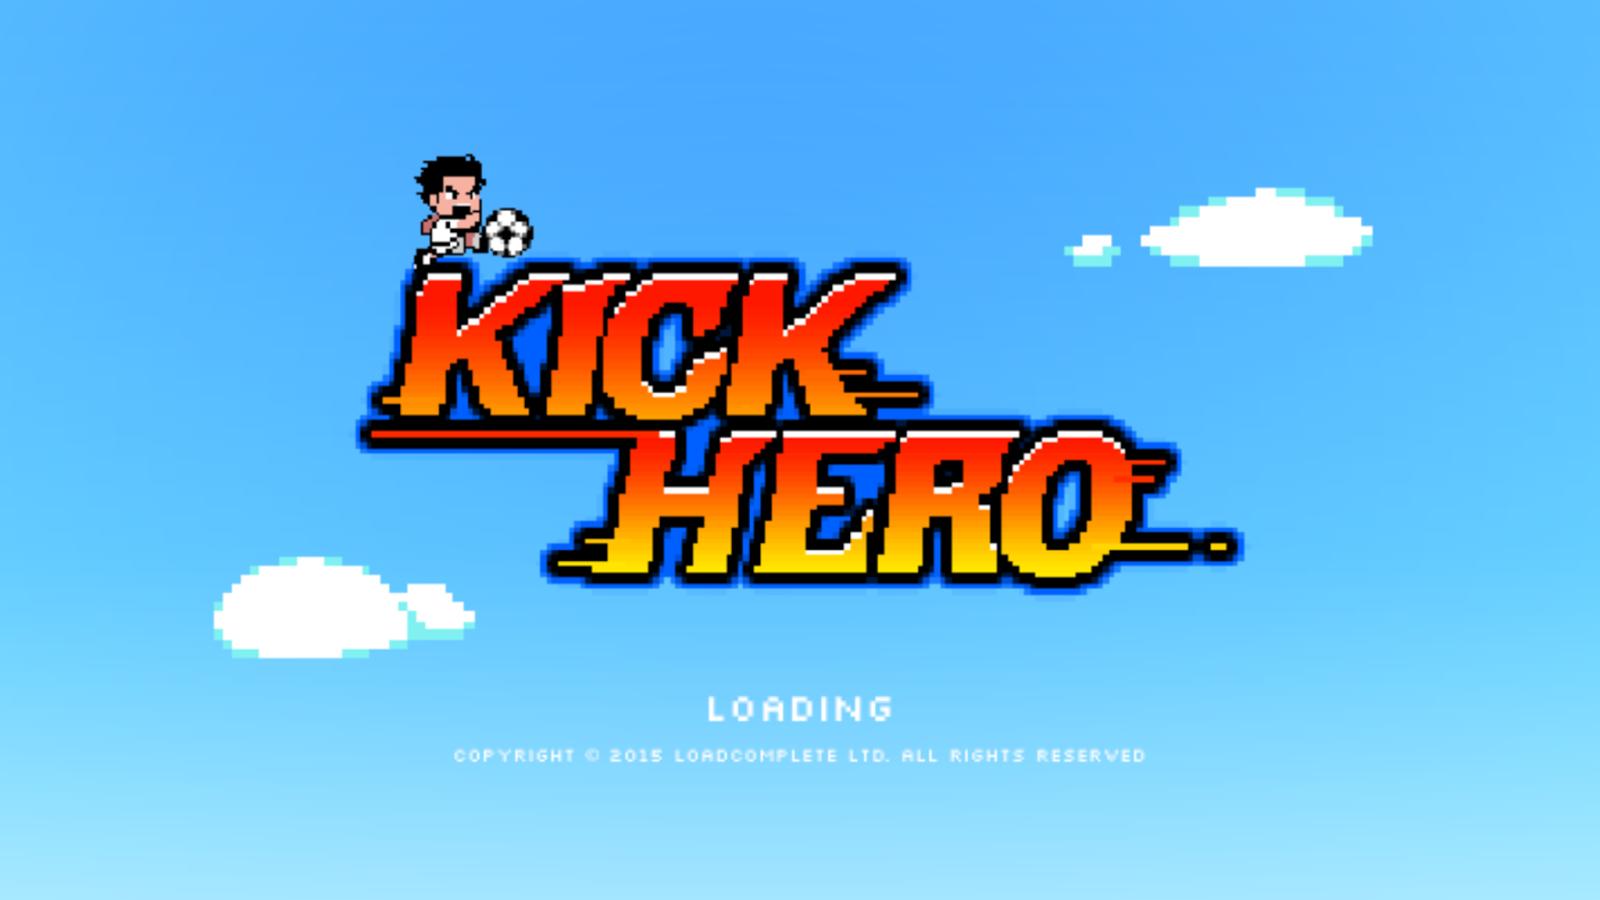 Fun addicting game apps - Today Free Iphone Game Of The Day Is Kick Hero